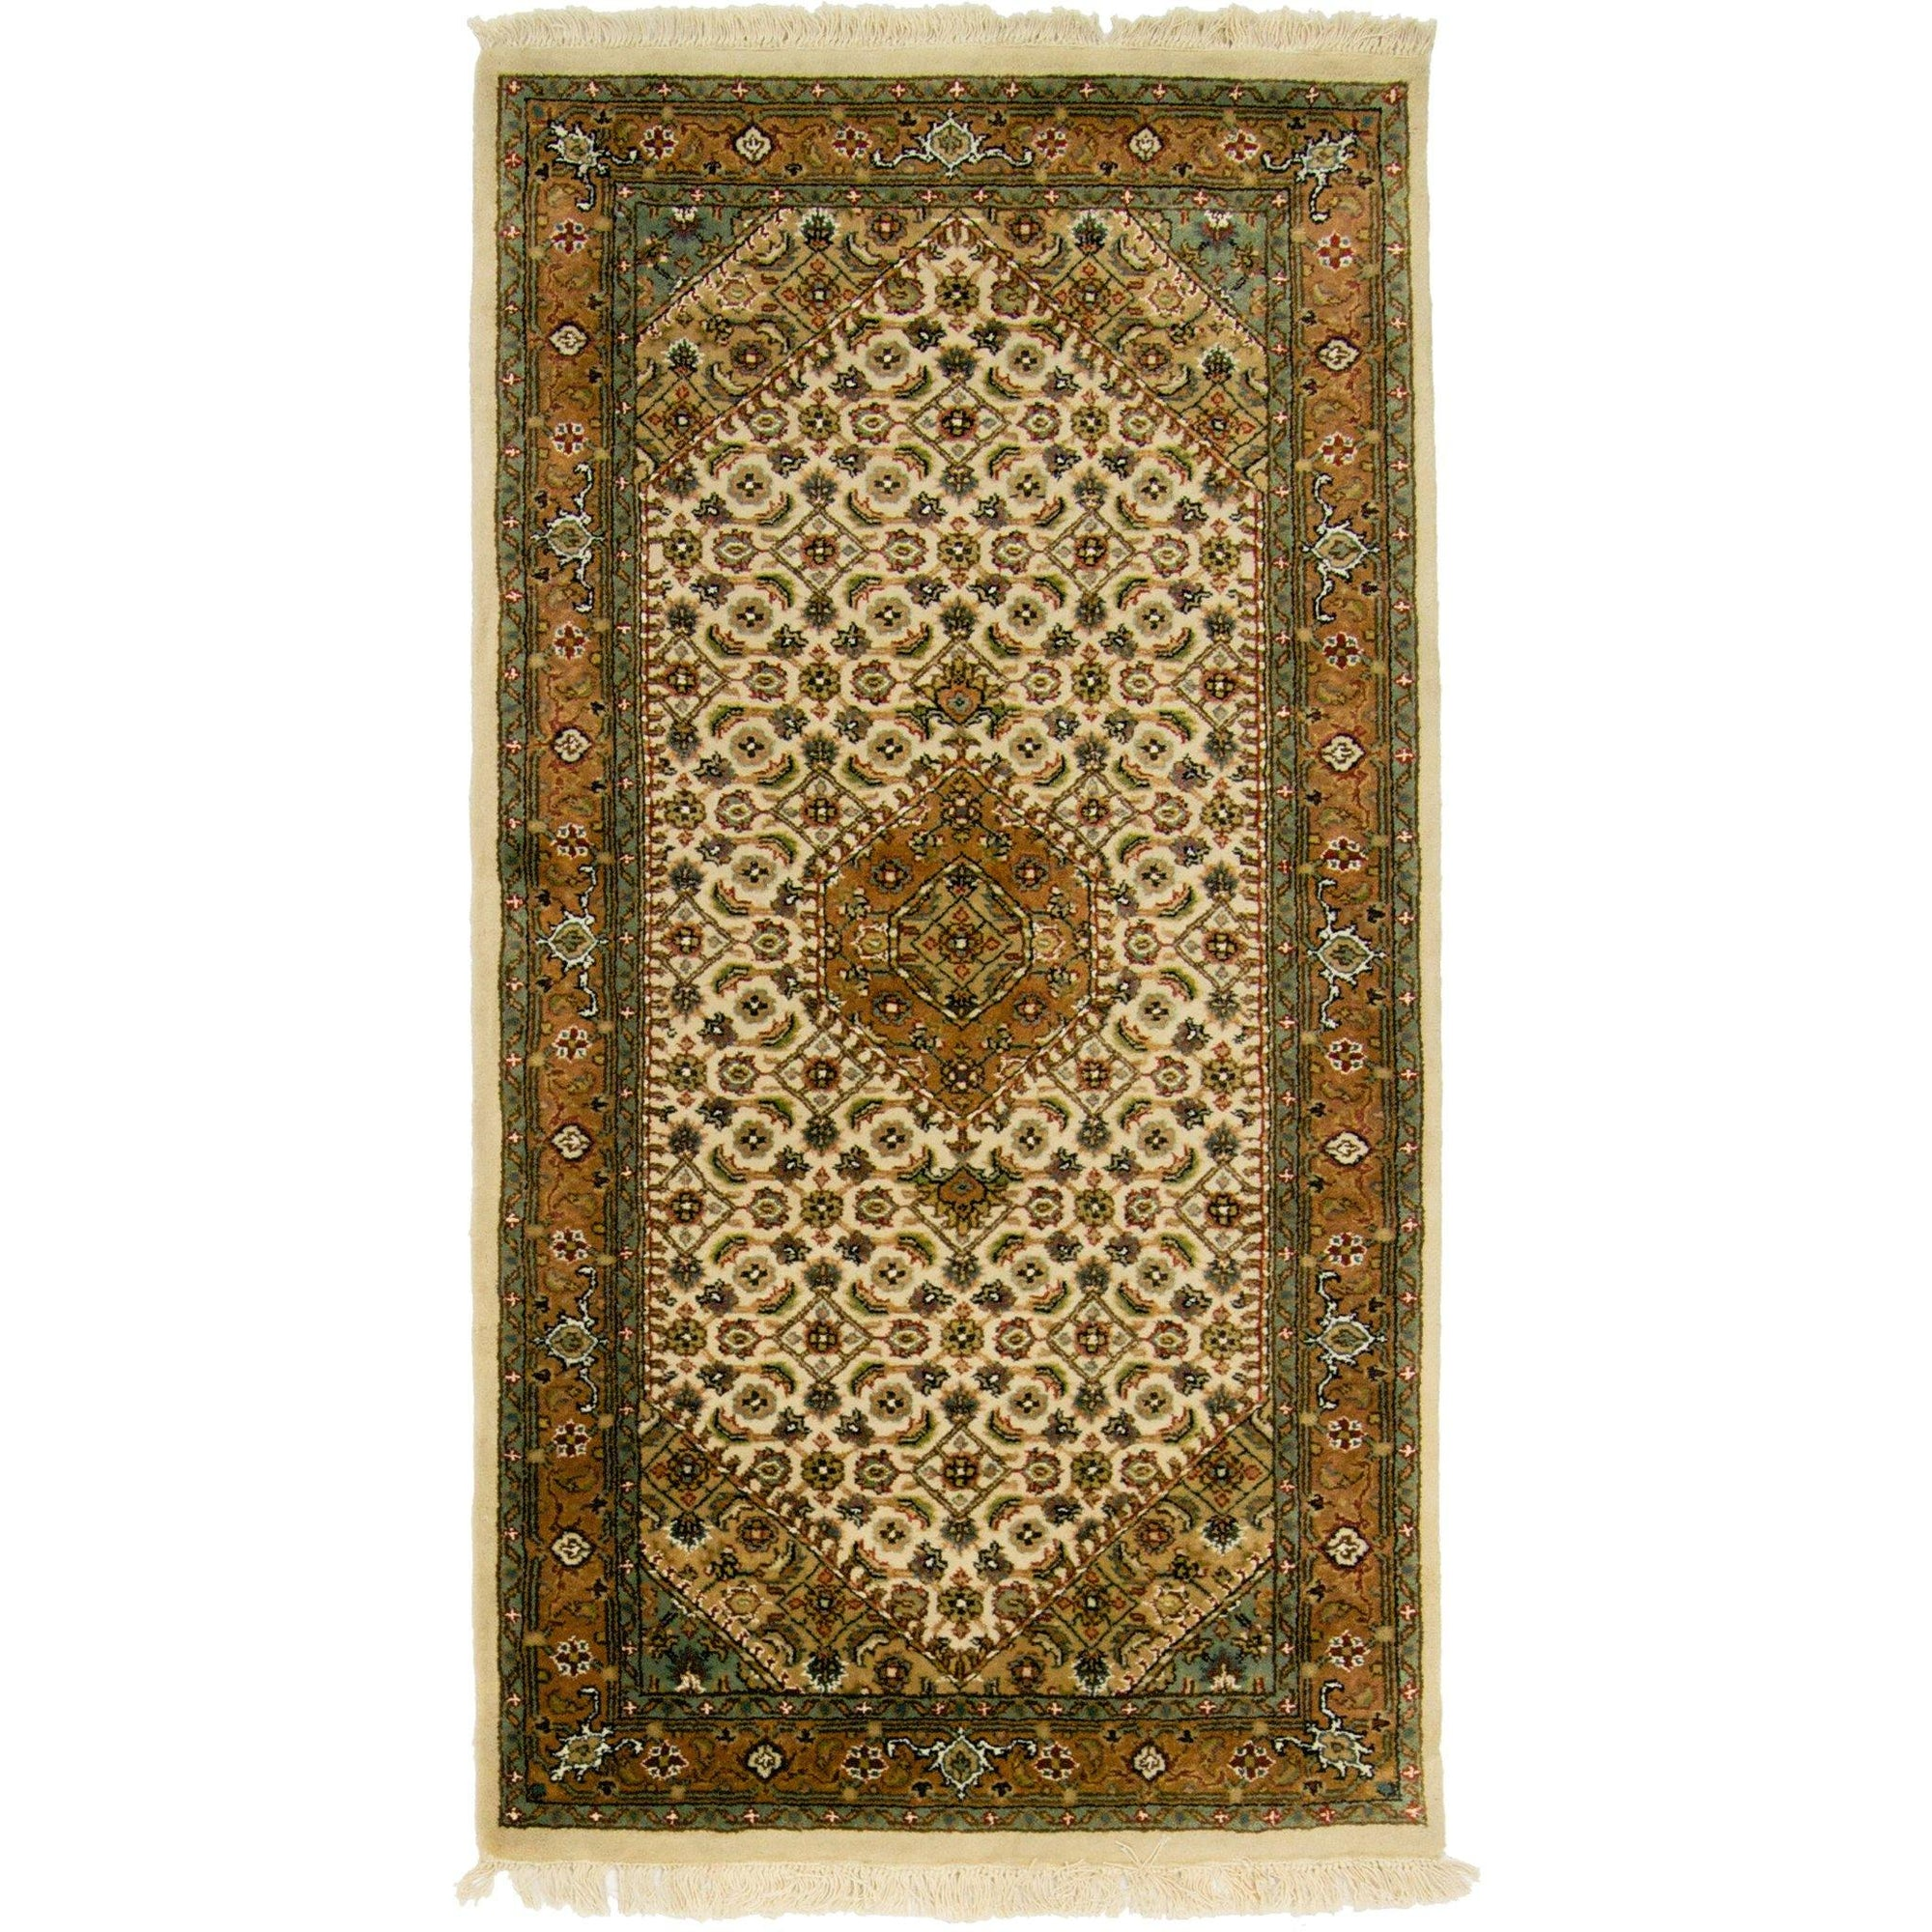 Fine Hand-knotted Wool Bijar Rug 70cm x 141cm Persian-Rug | House-of-Haghi | NewMarket | Auckland | NZ | Handmade Persian Rugs | Hand Knotted Persian Rugs